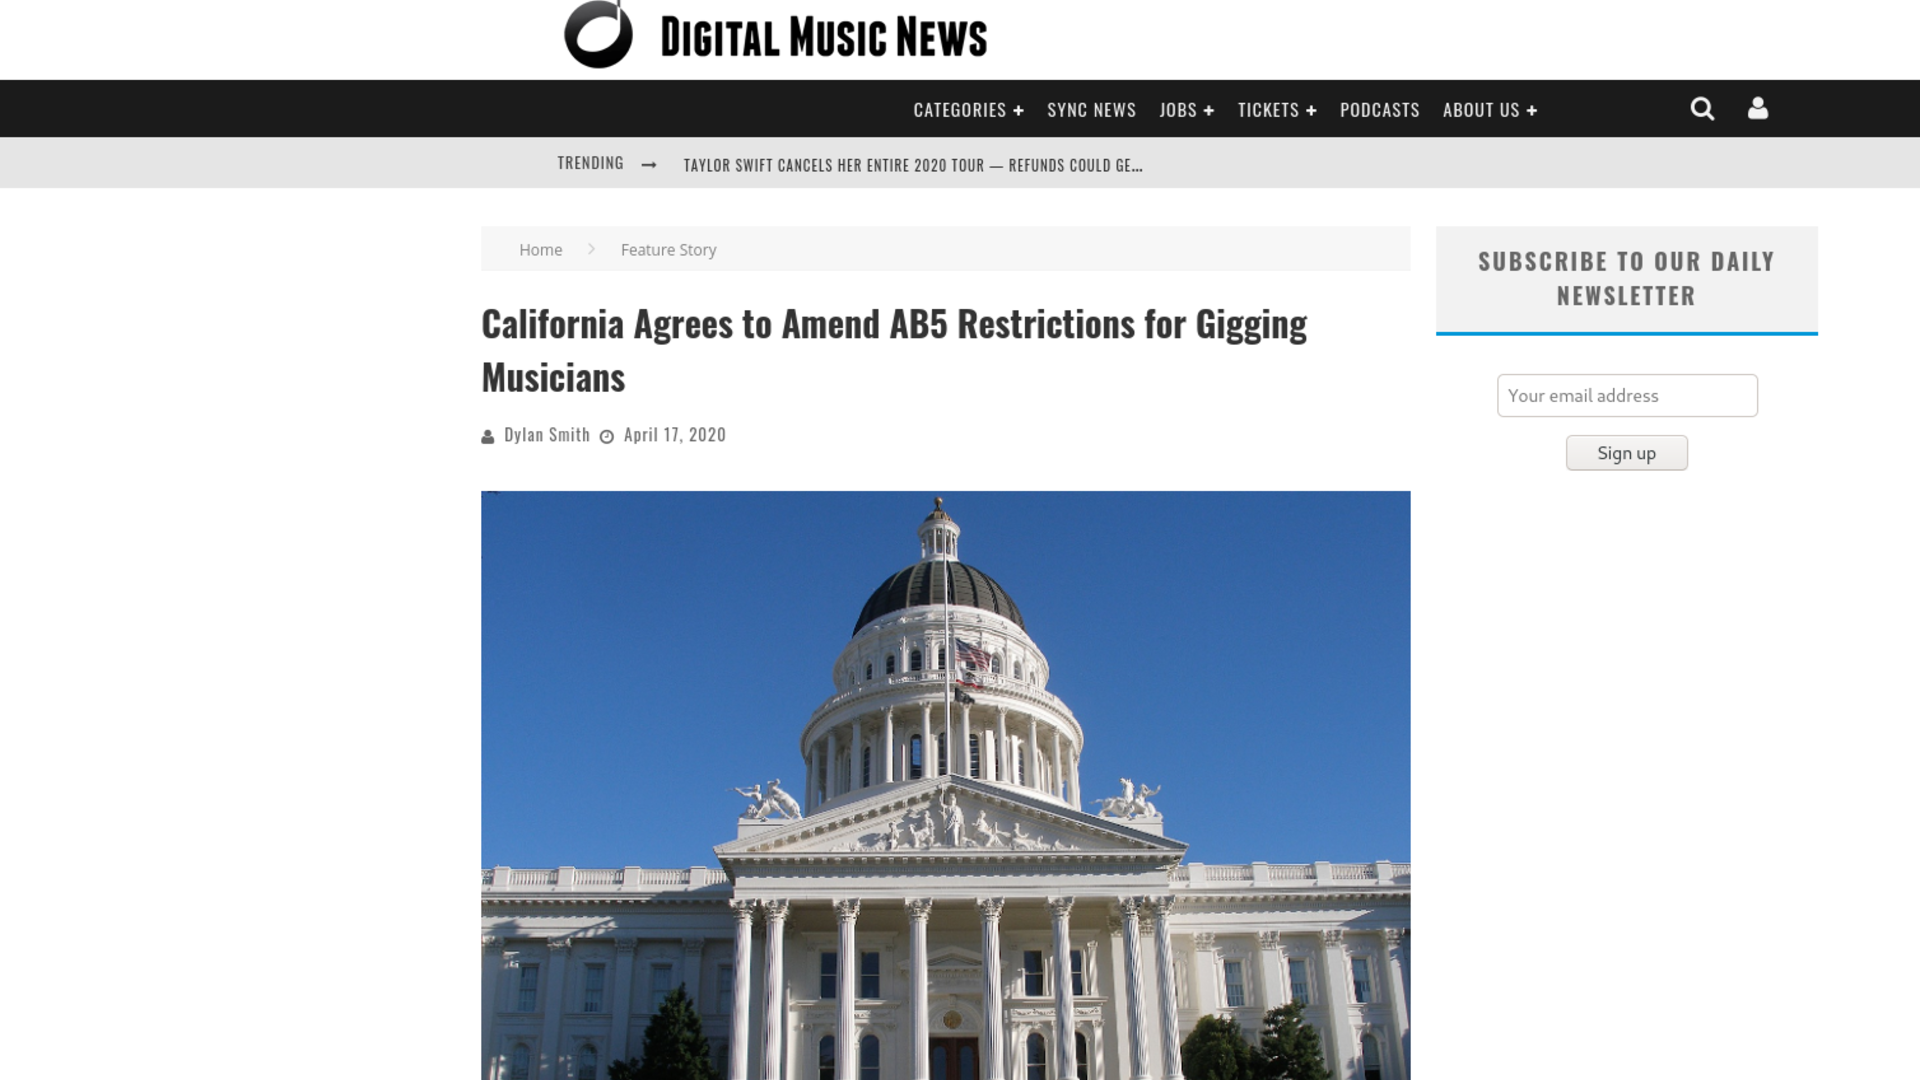 Fairness Rocks News California Agrees to Amend AB5 Restrictions for Gigging Musicians